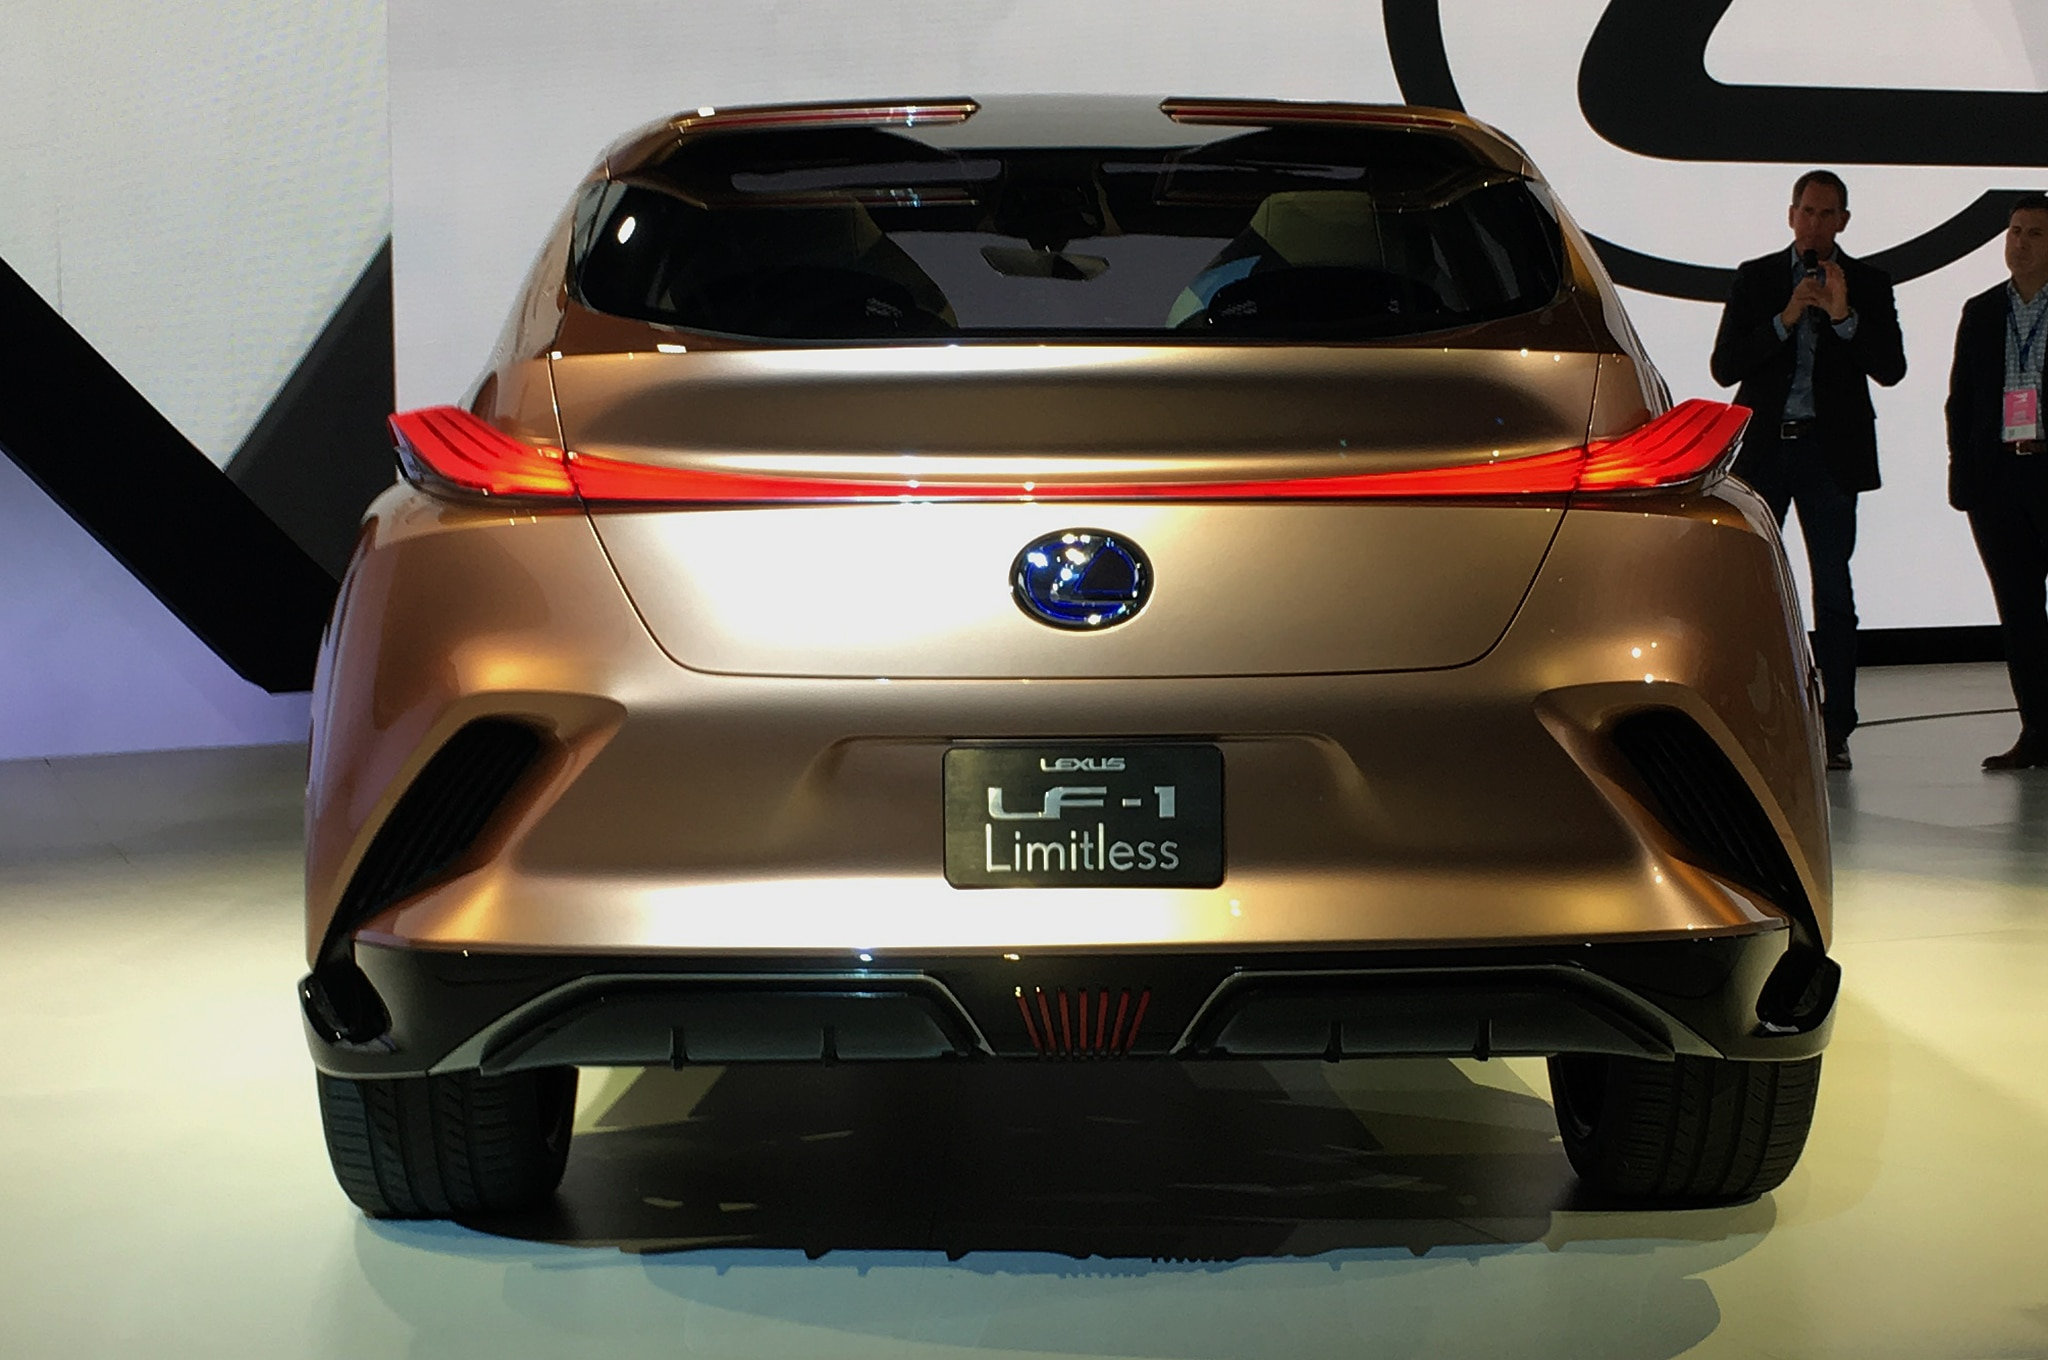 Lexus Lf 1 Limitless Concept Showcases Brand S Future Automobile